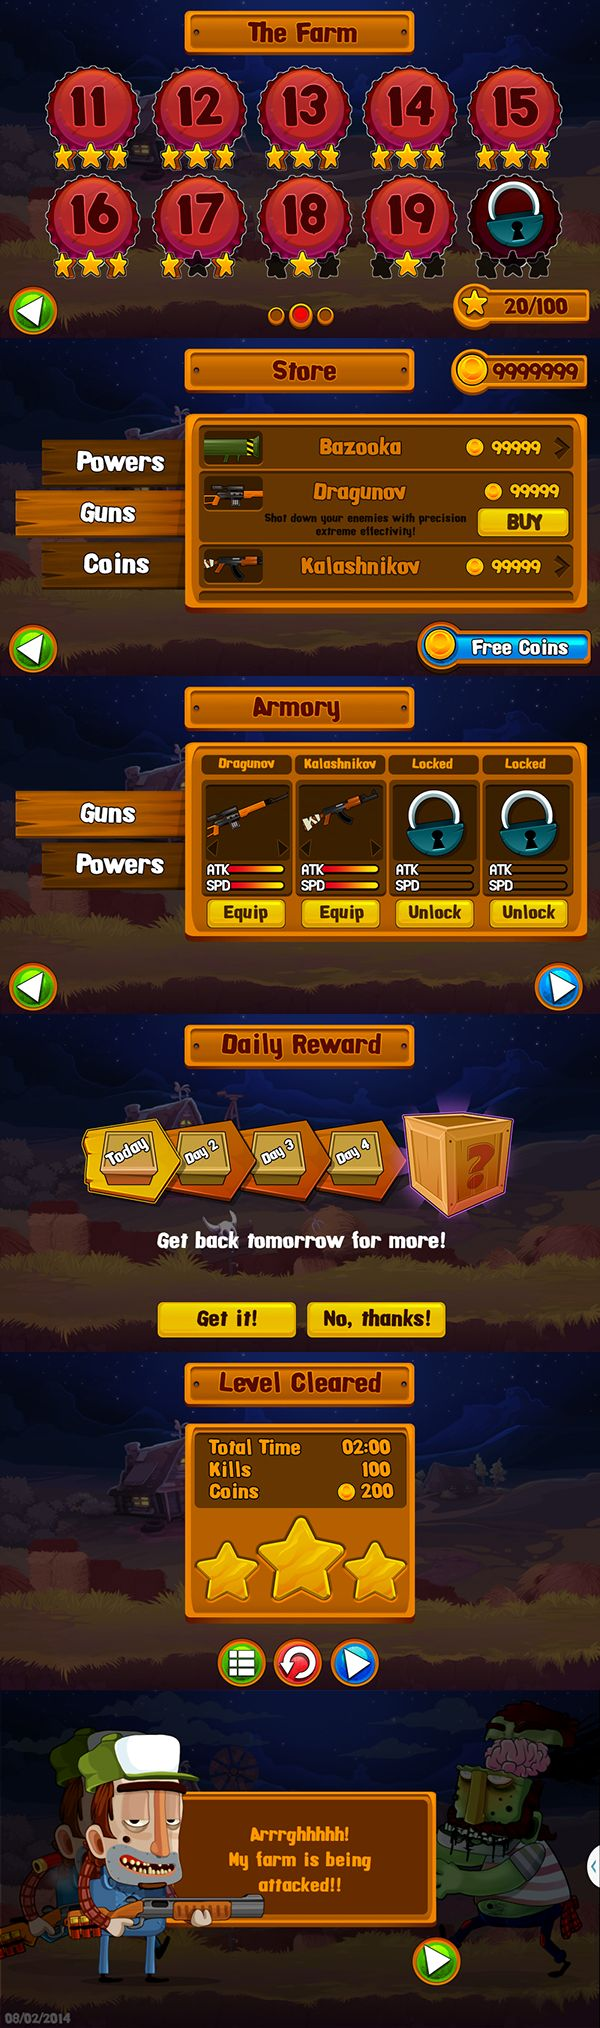 Redneck Redemption - Mobile Game on Behance